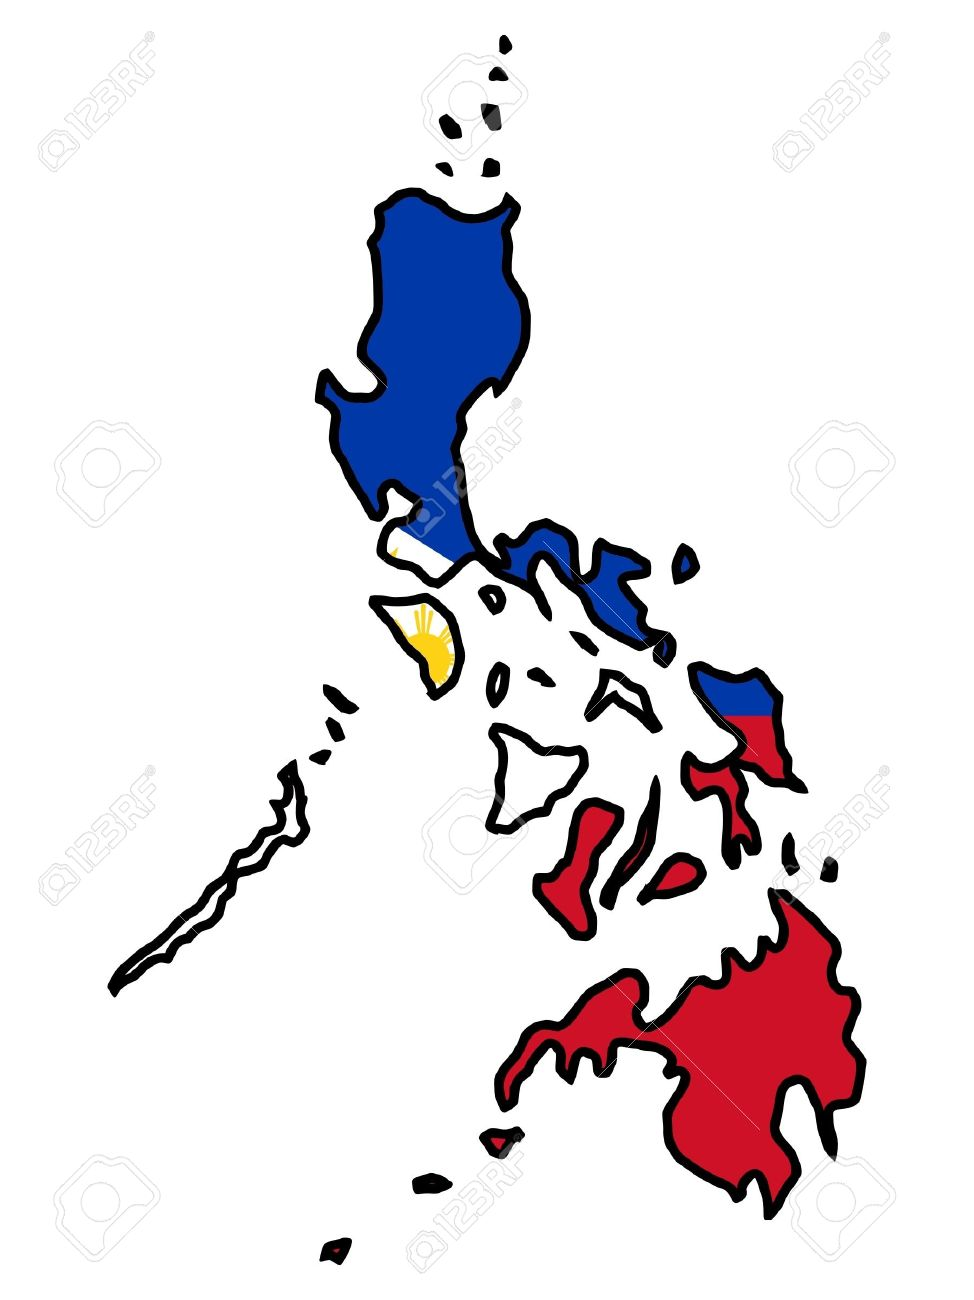 illustration of flag in map of philippines royalty free cliparts